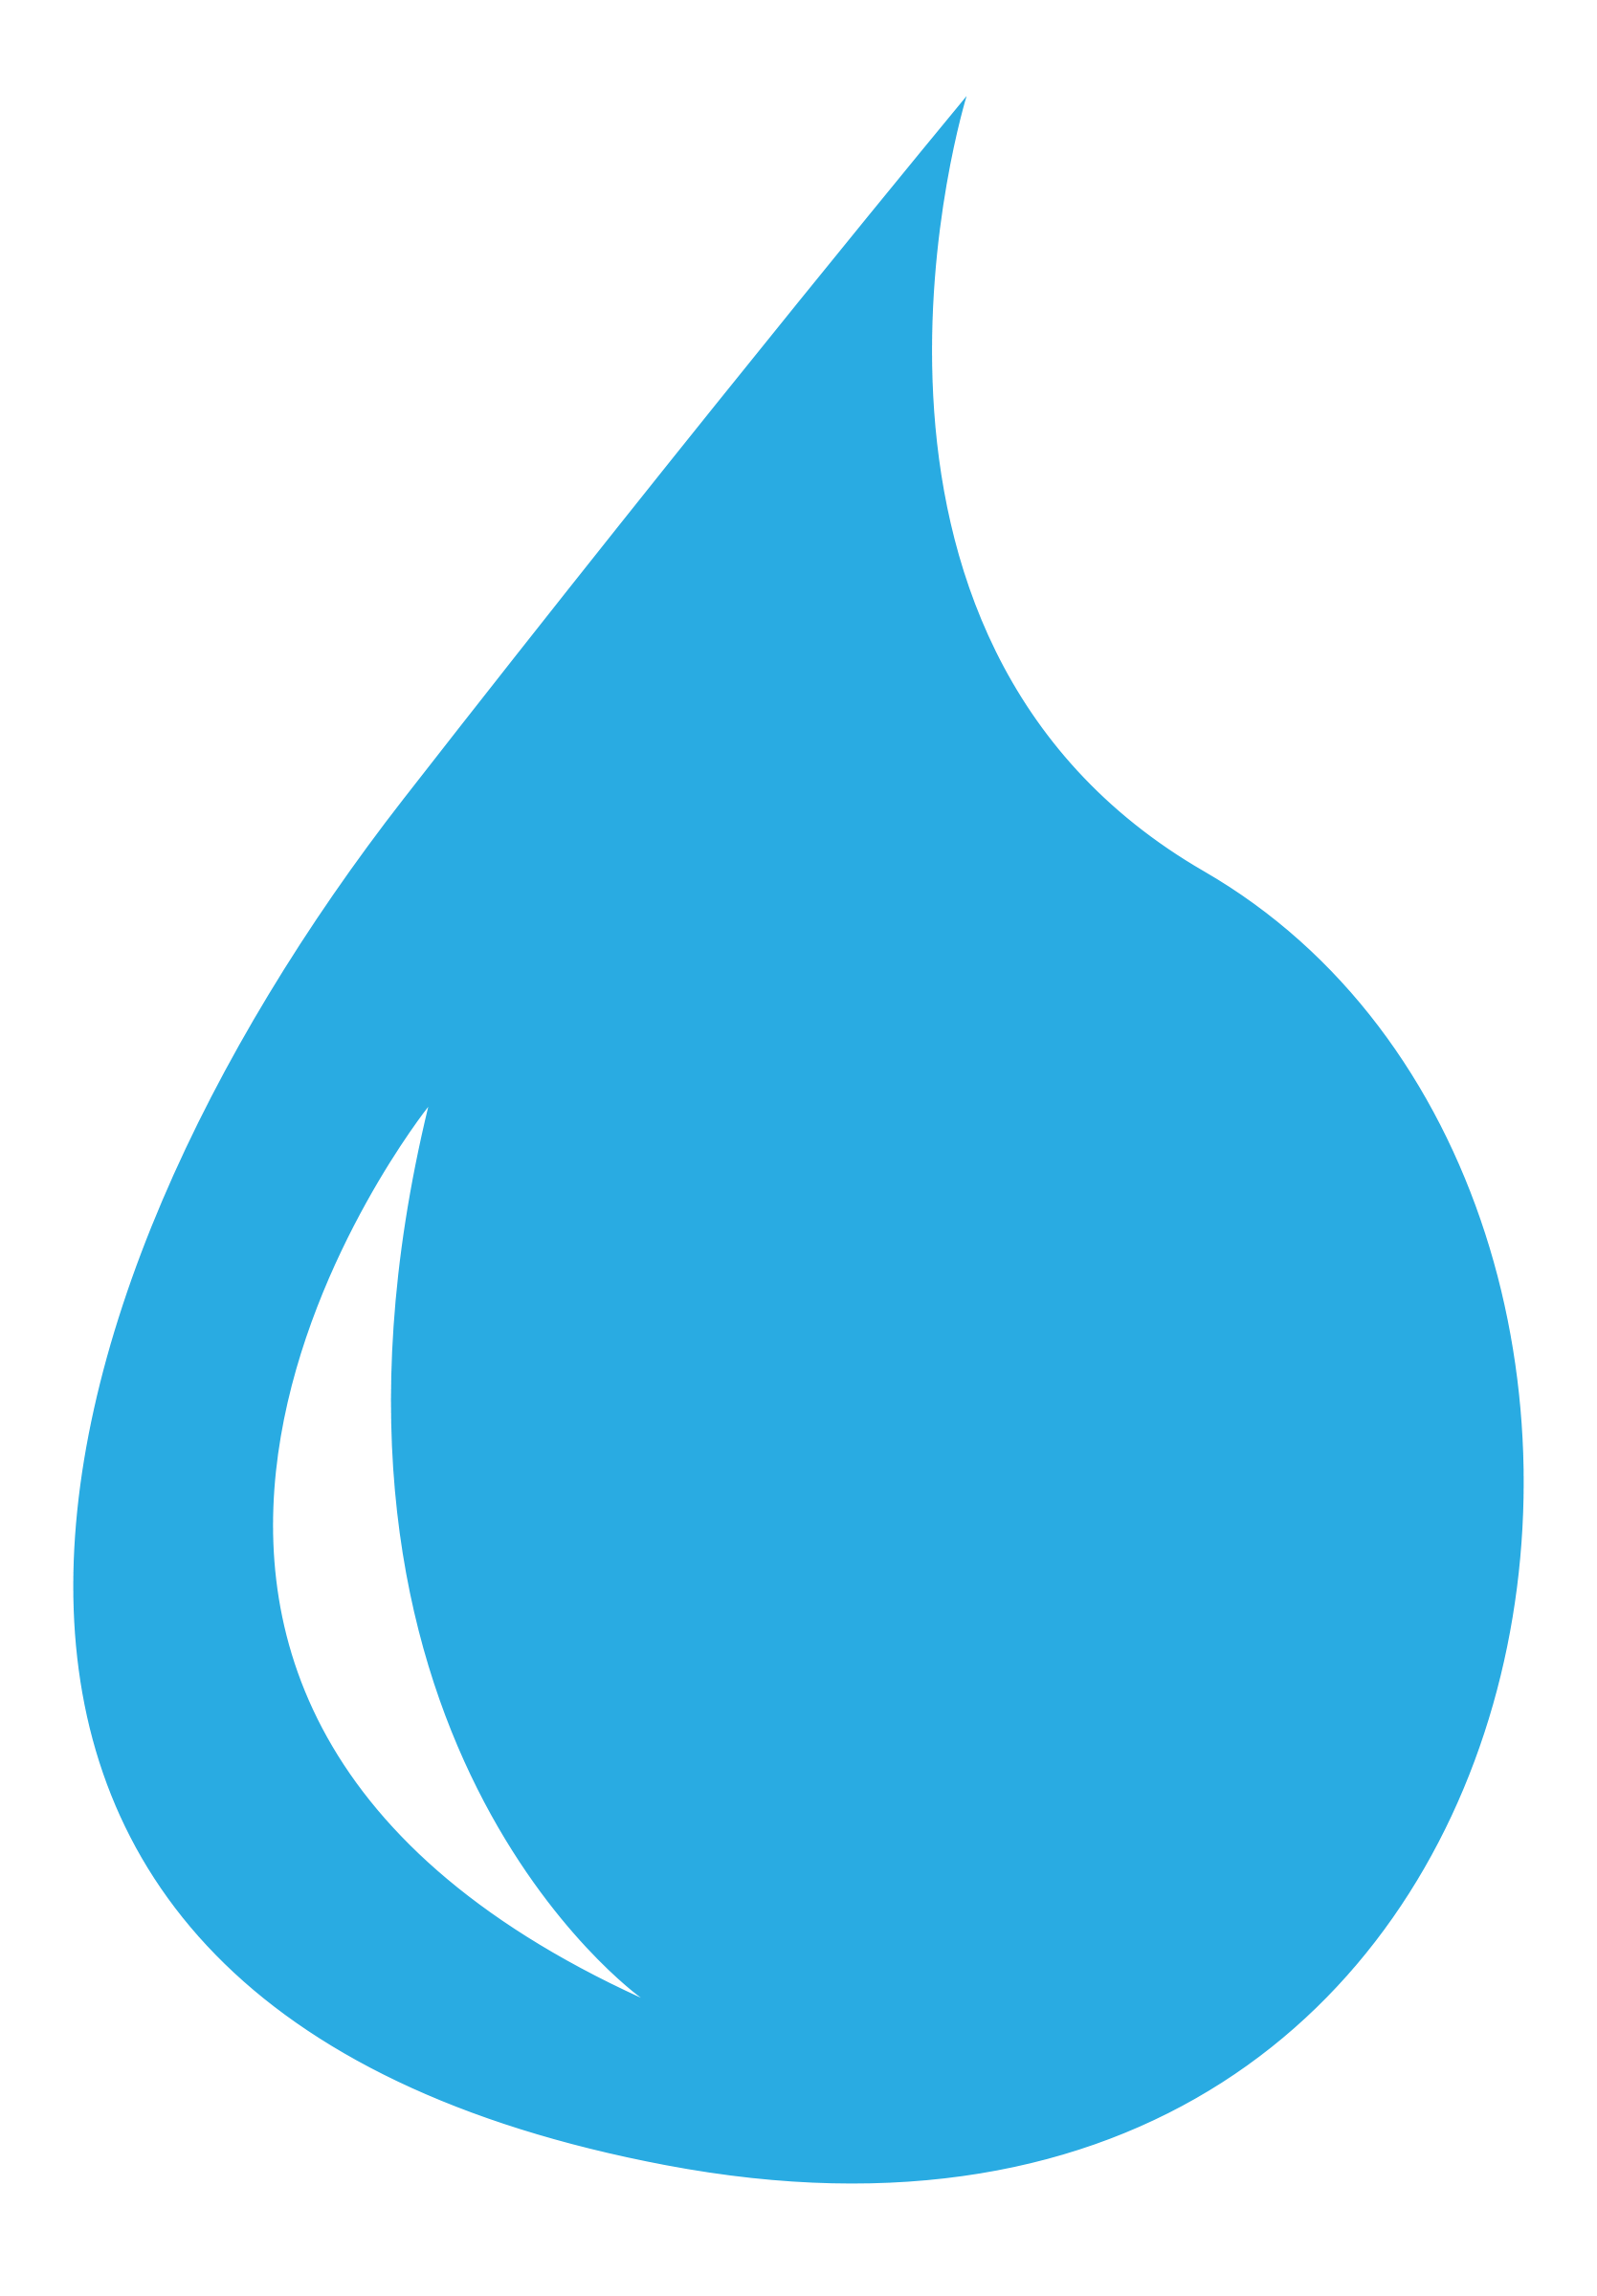 Water Drop Icon Symbol image #46388